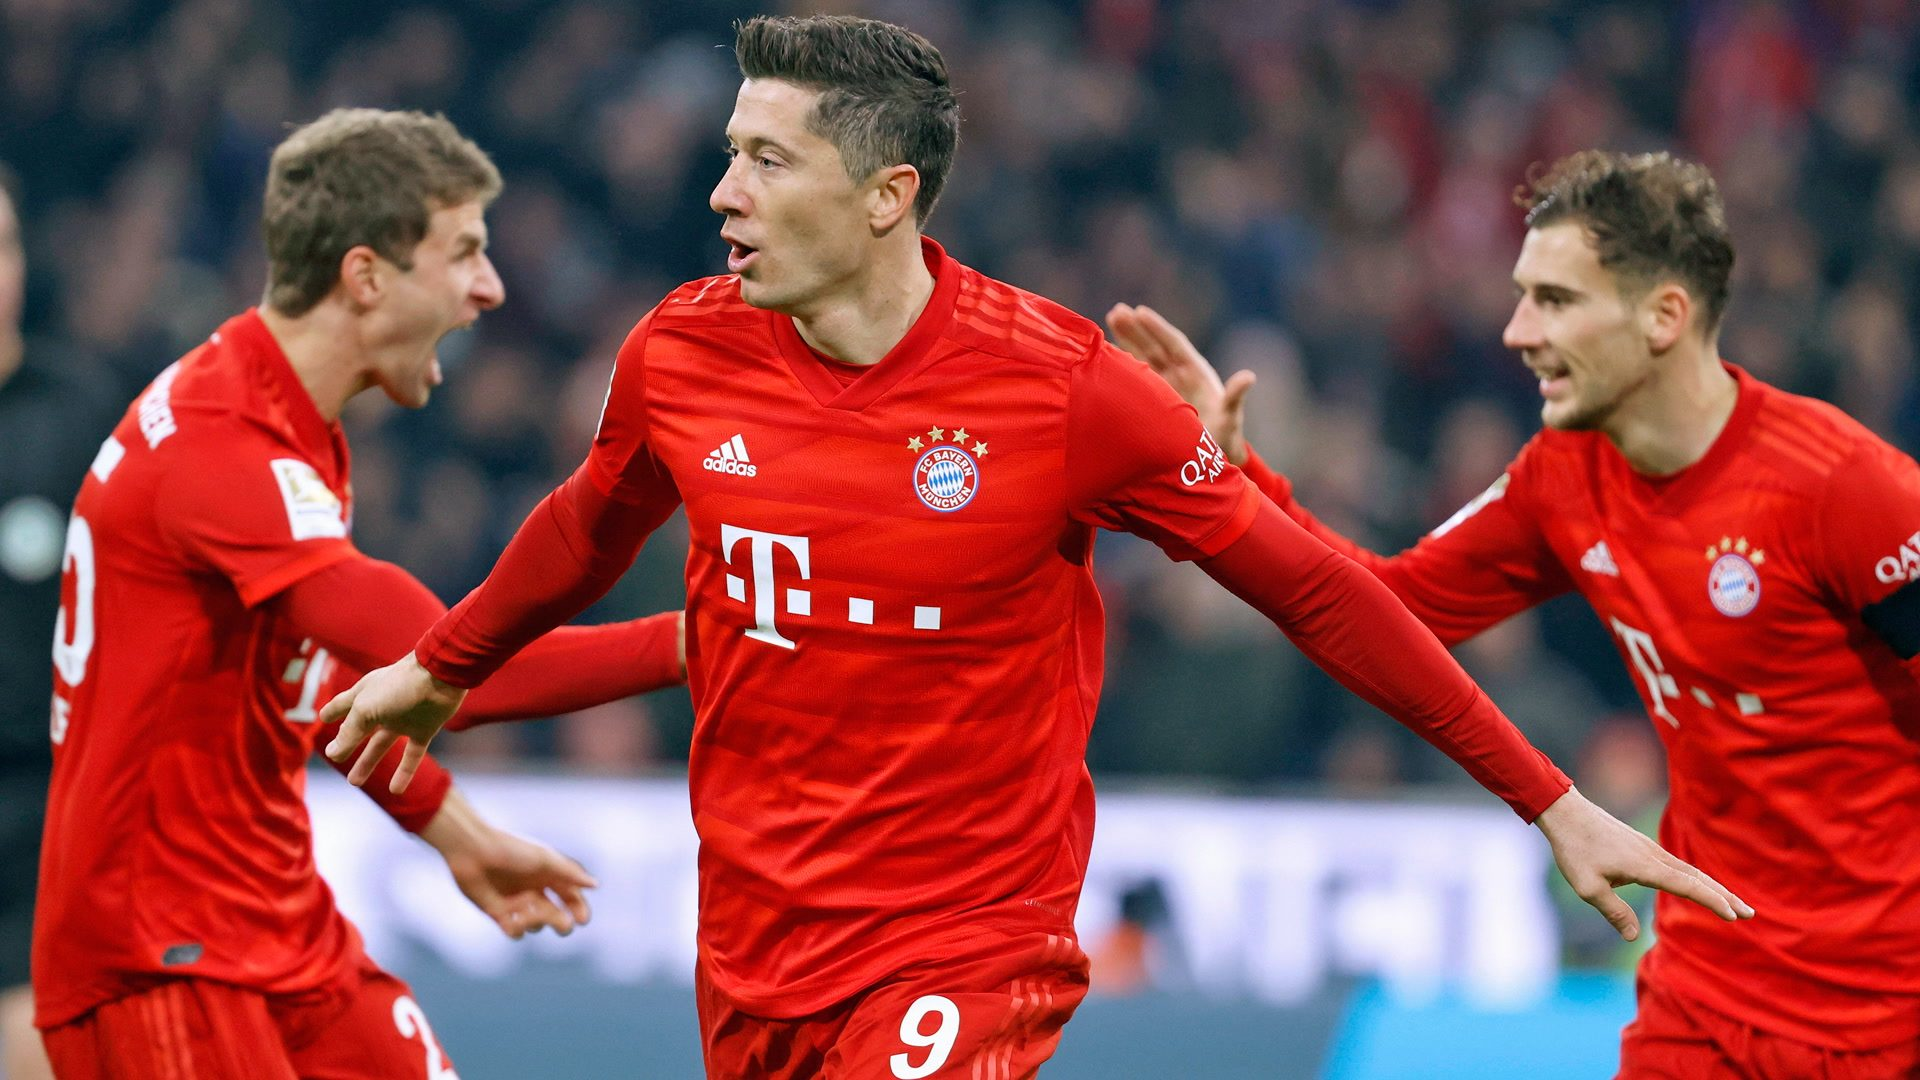 Bundesliga | Robert Lewandowski leads five-star Bayern Munich to win over  Schalke